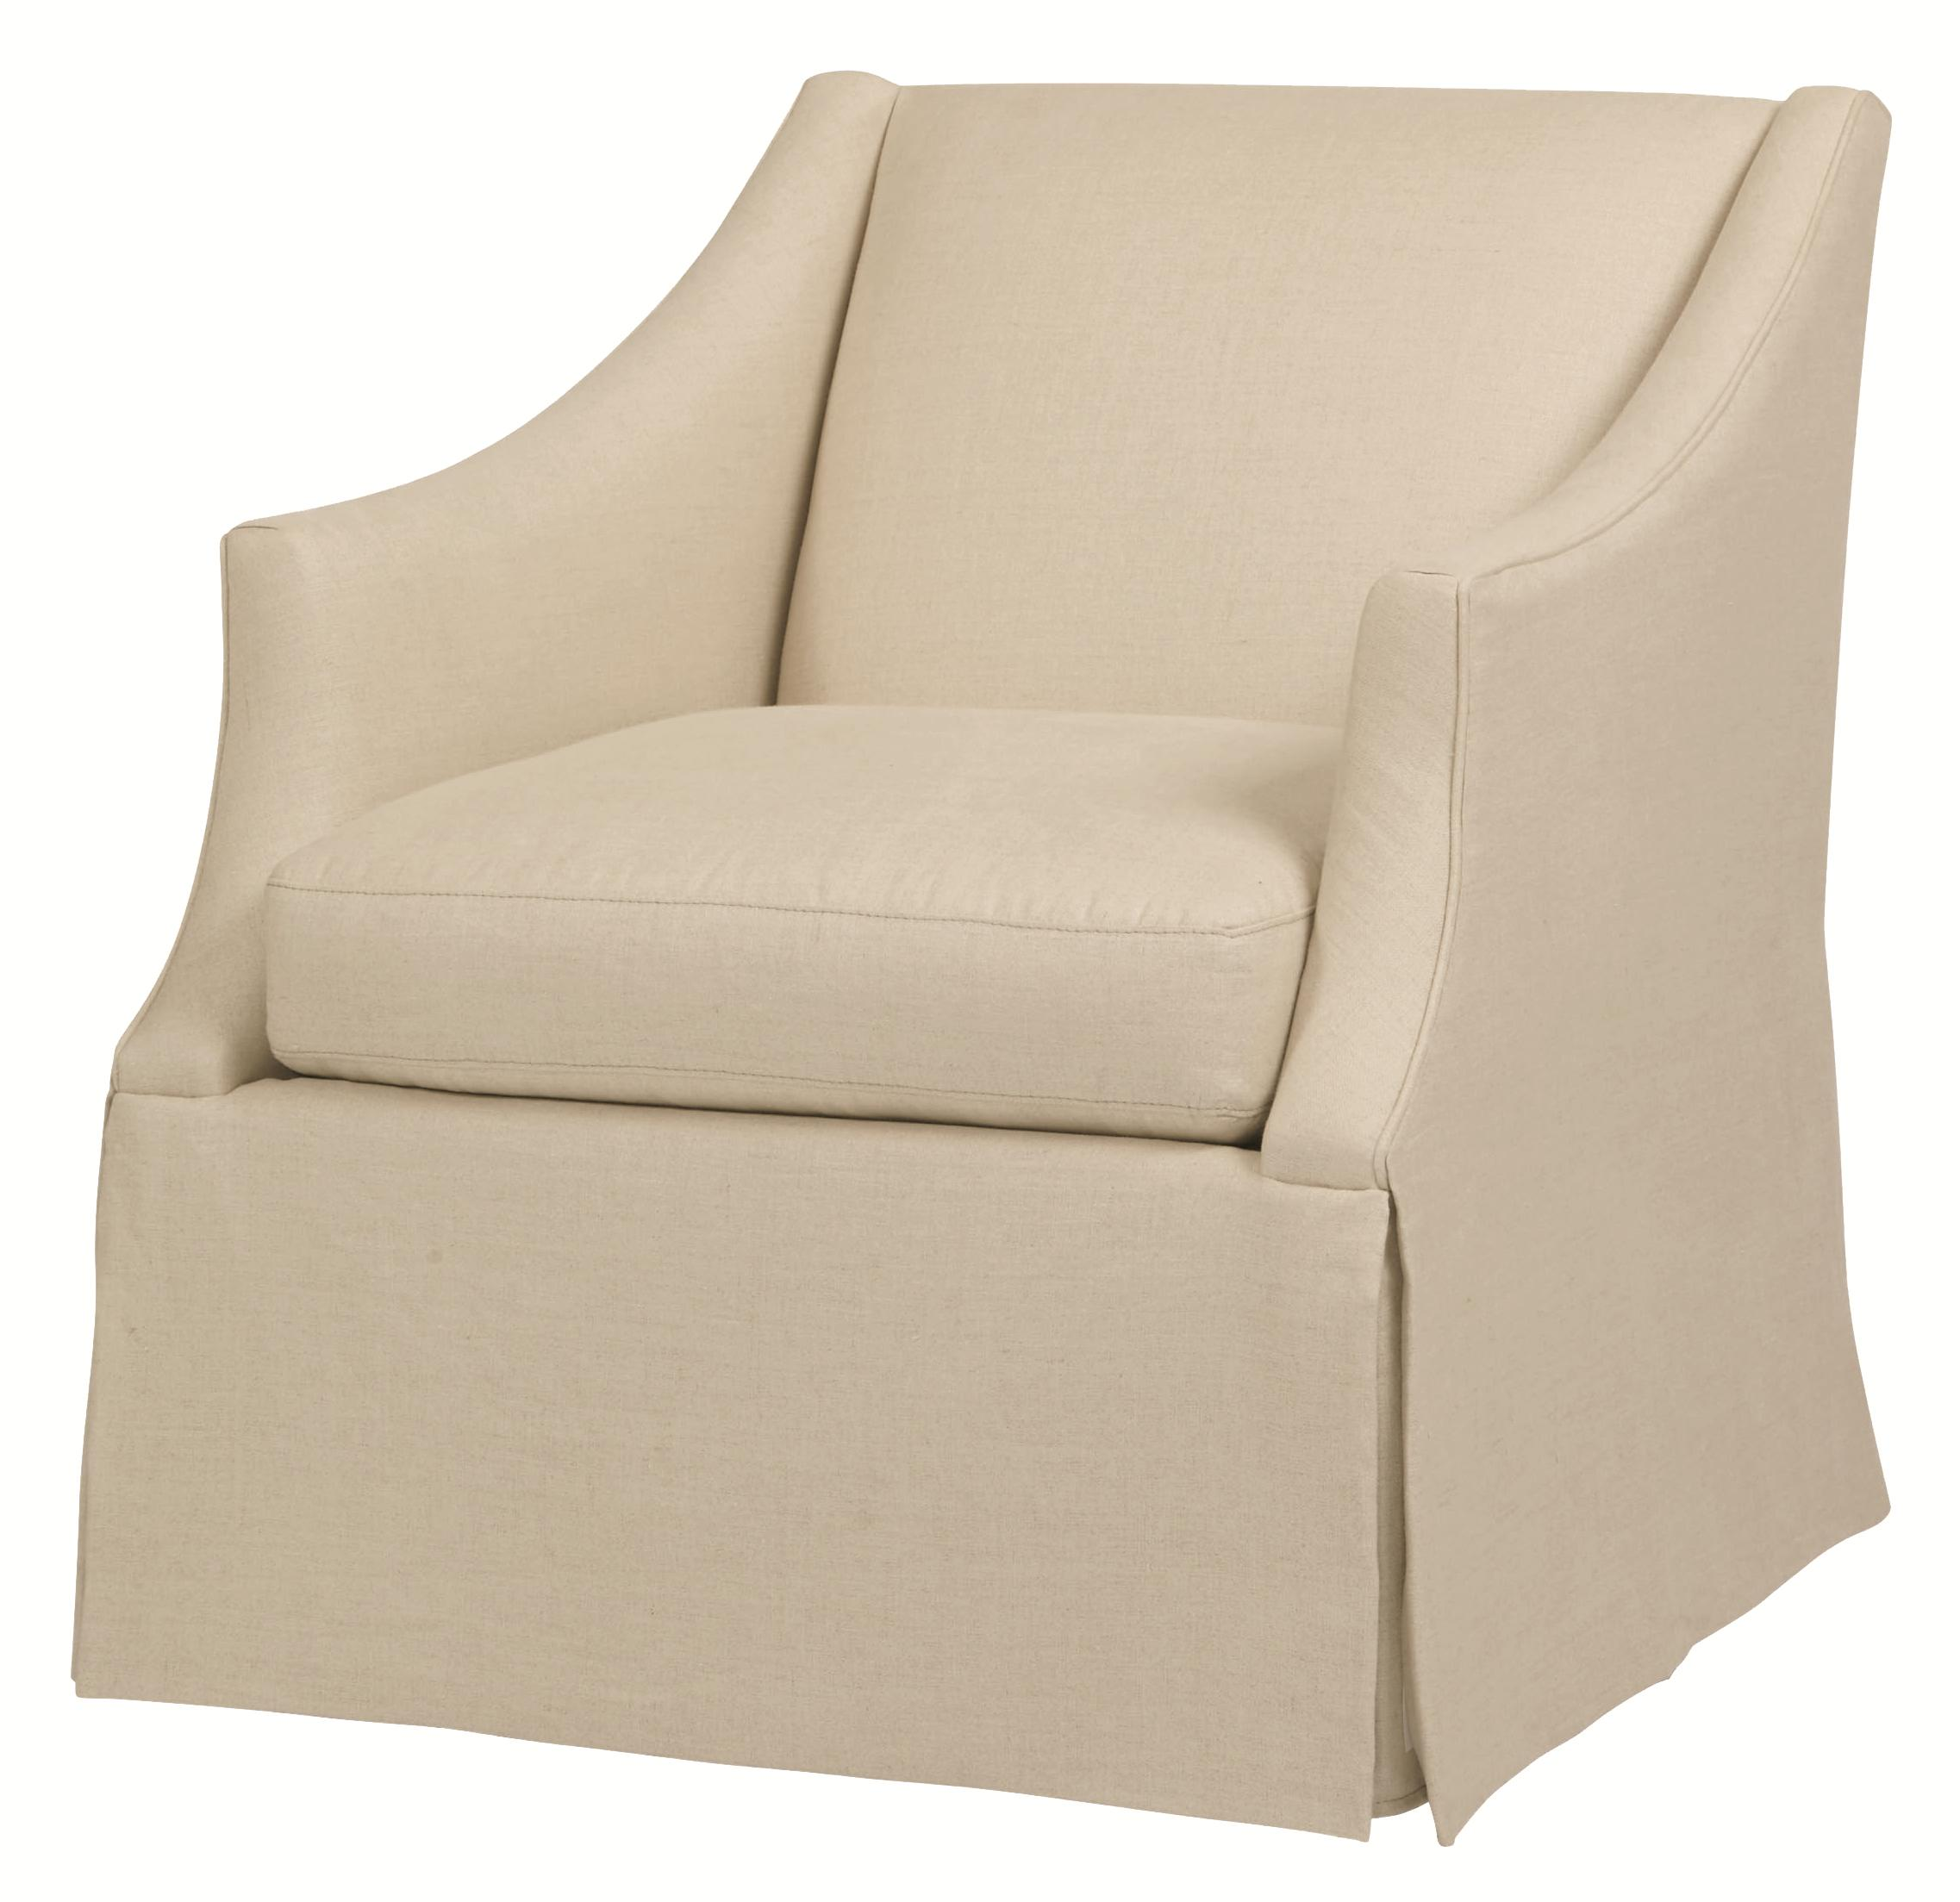 Bernhardt Upholstered Accents Clayton Chair   Item Number: B1741